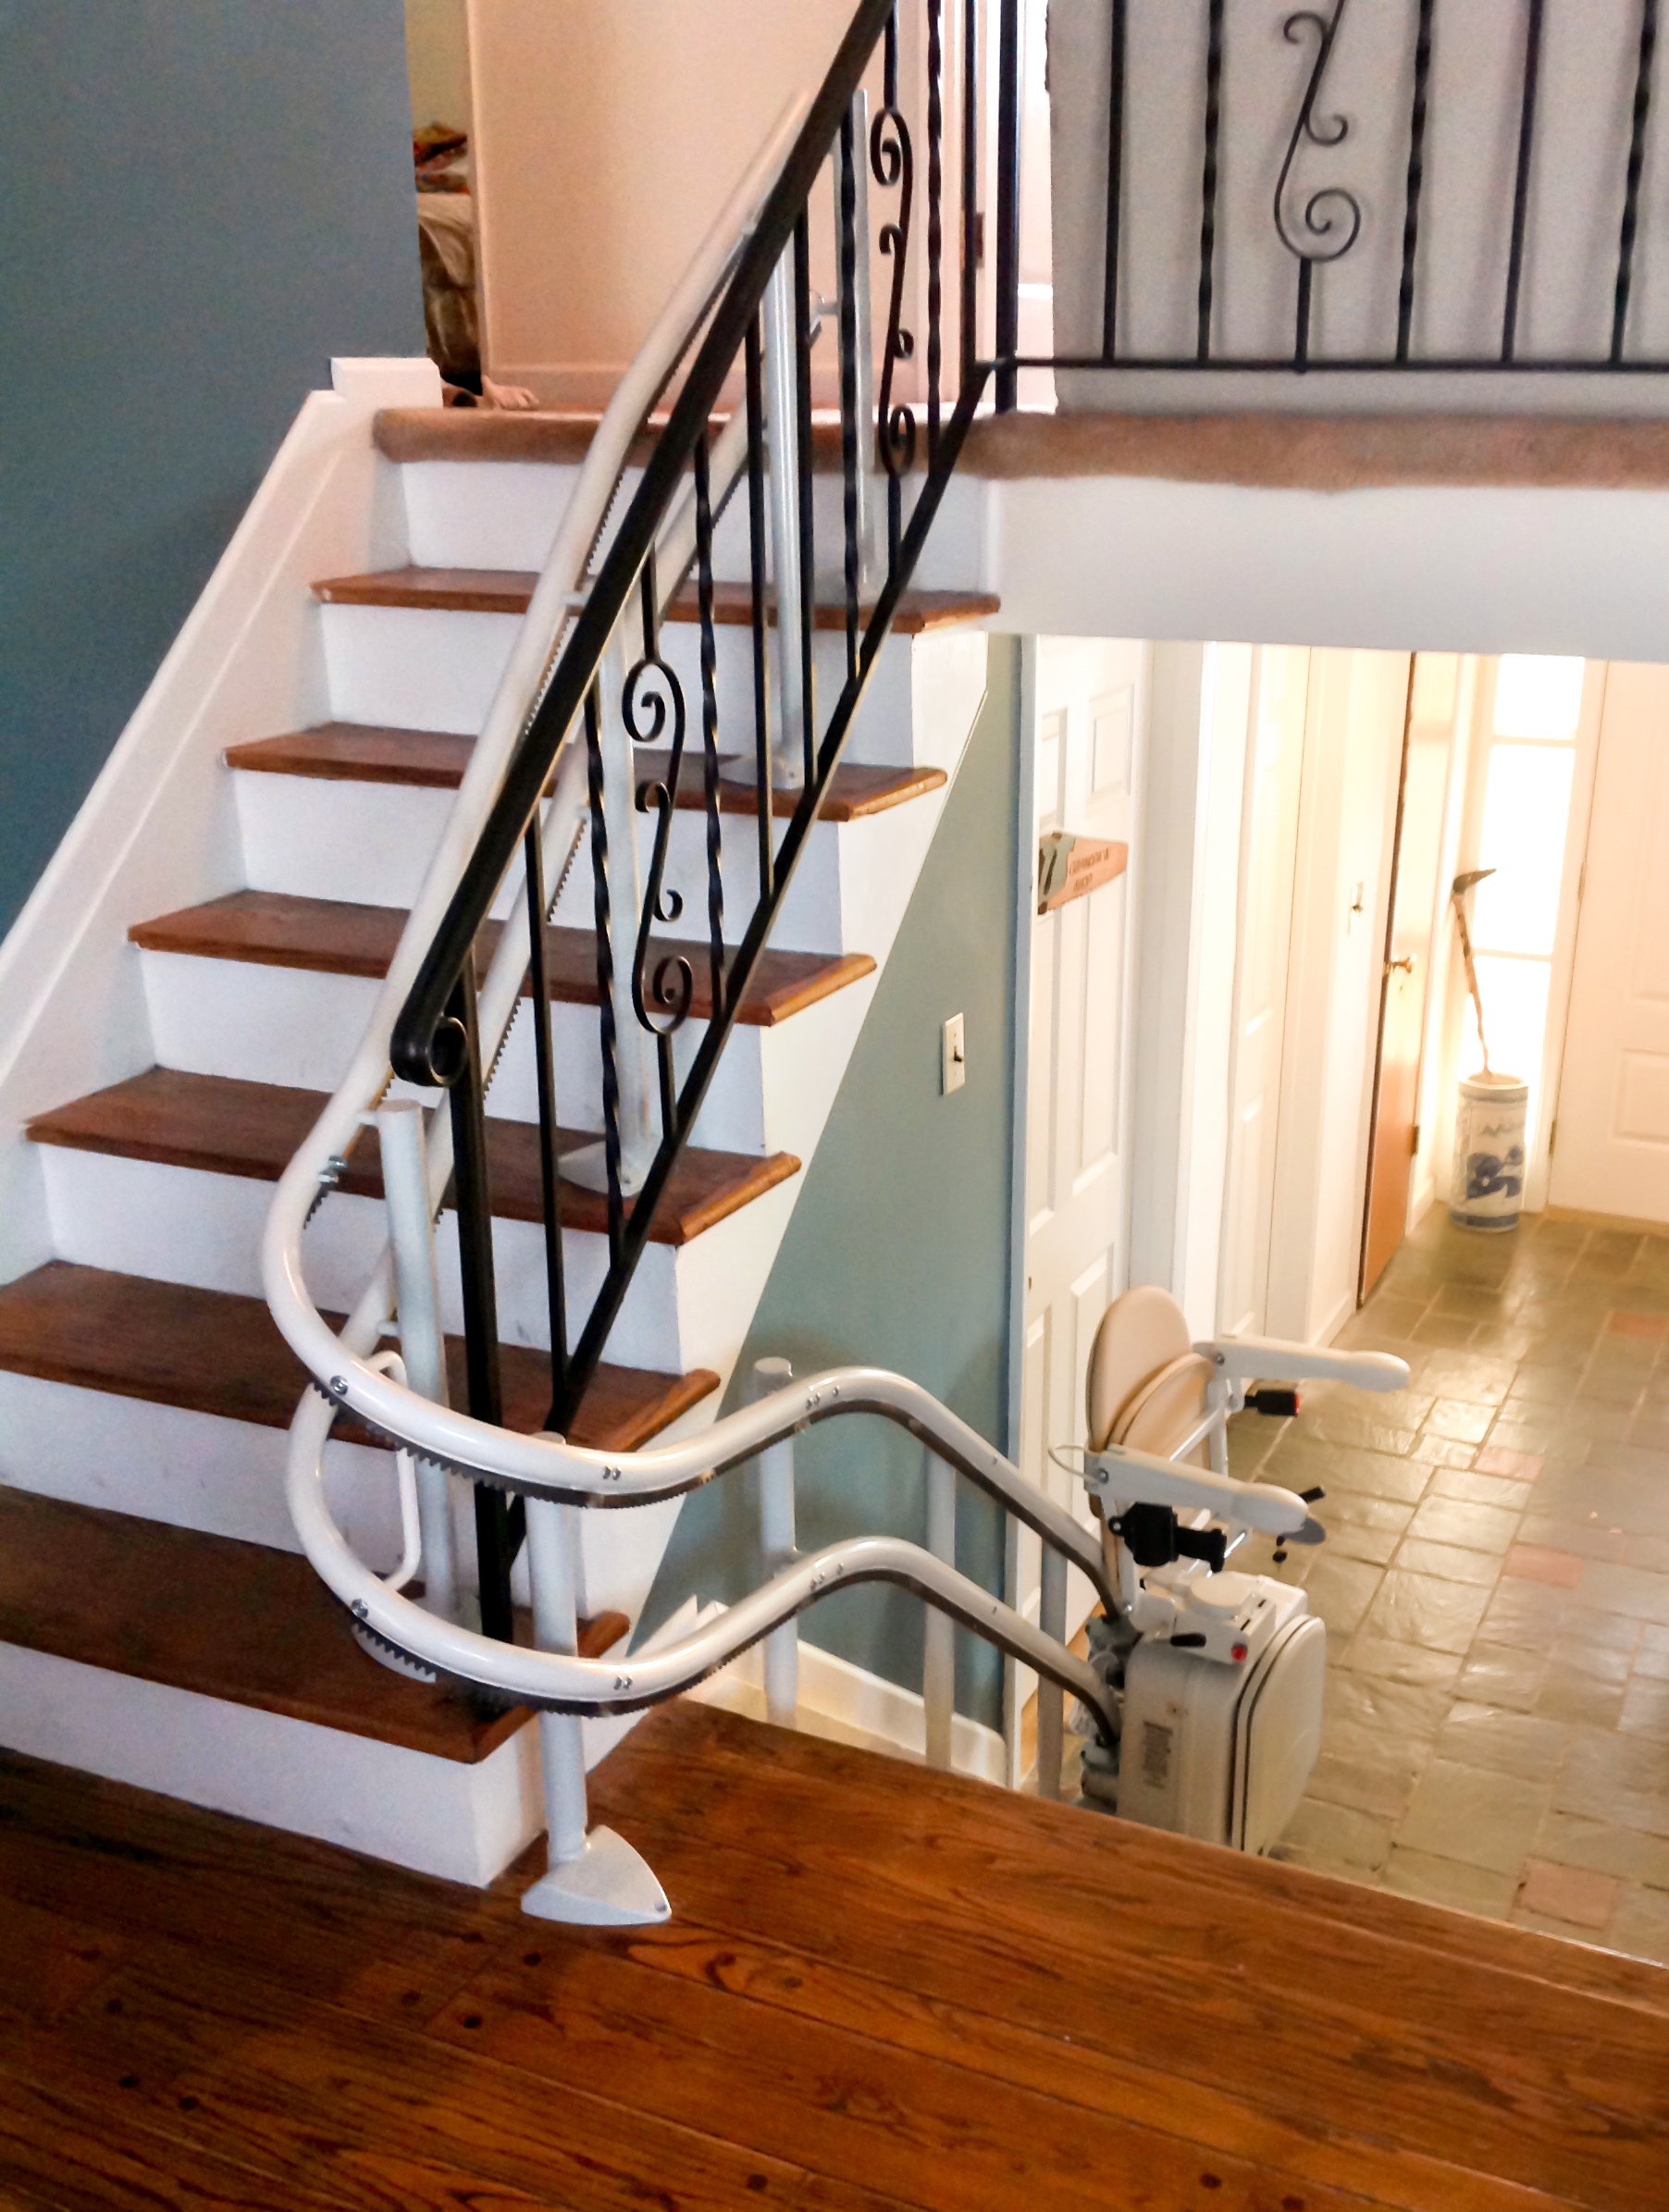 Curved Rail Stair Lifts Stairlift For Curved Stairs Centerspan | Stair Rails For Elderly | Porch | Stair Climbing | Stainless Steel | Stair Climber | Cmmc Handrail